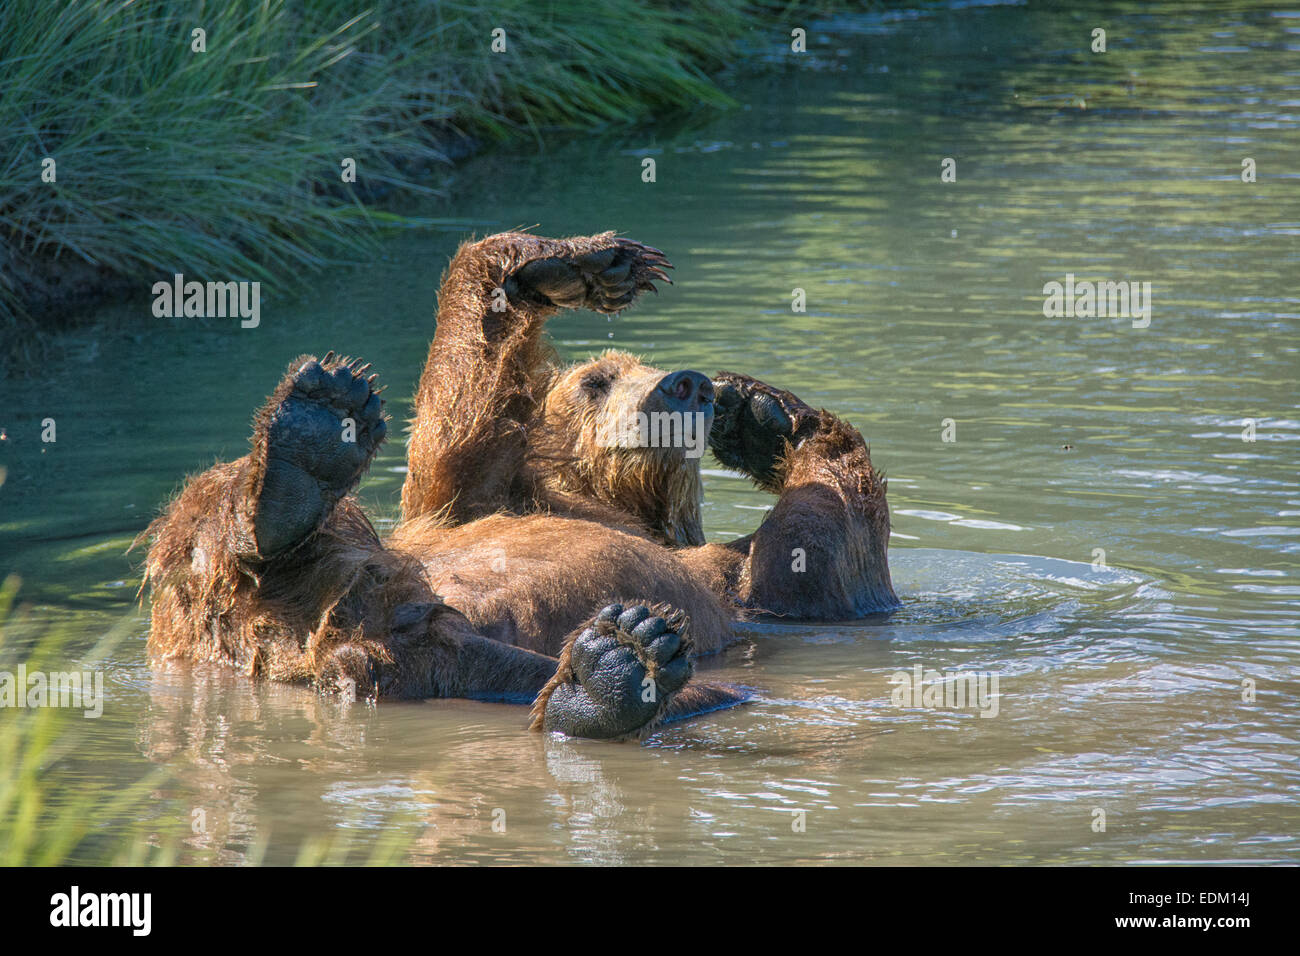 Adult Grizzly Bear, Ursus arctos, cooling off in a stream, Lake Clark National Park, Alaska, USA - Stock Image